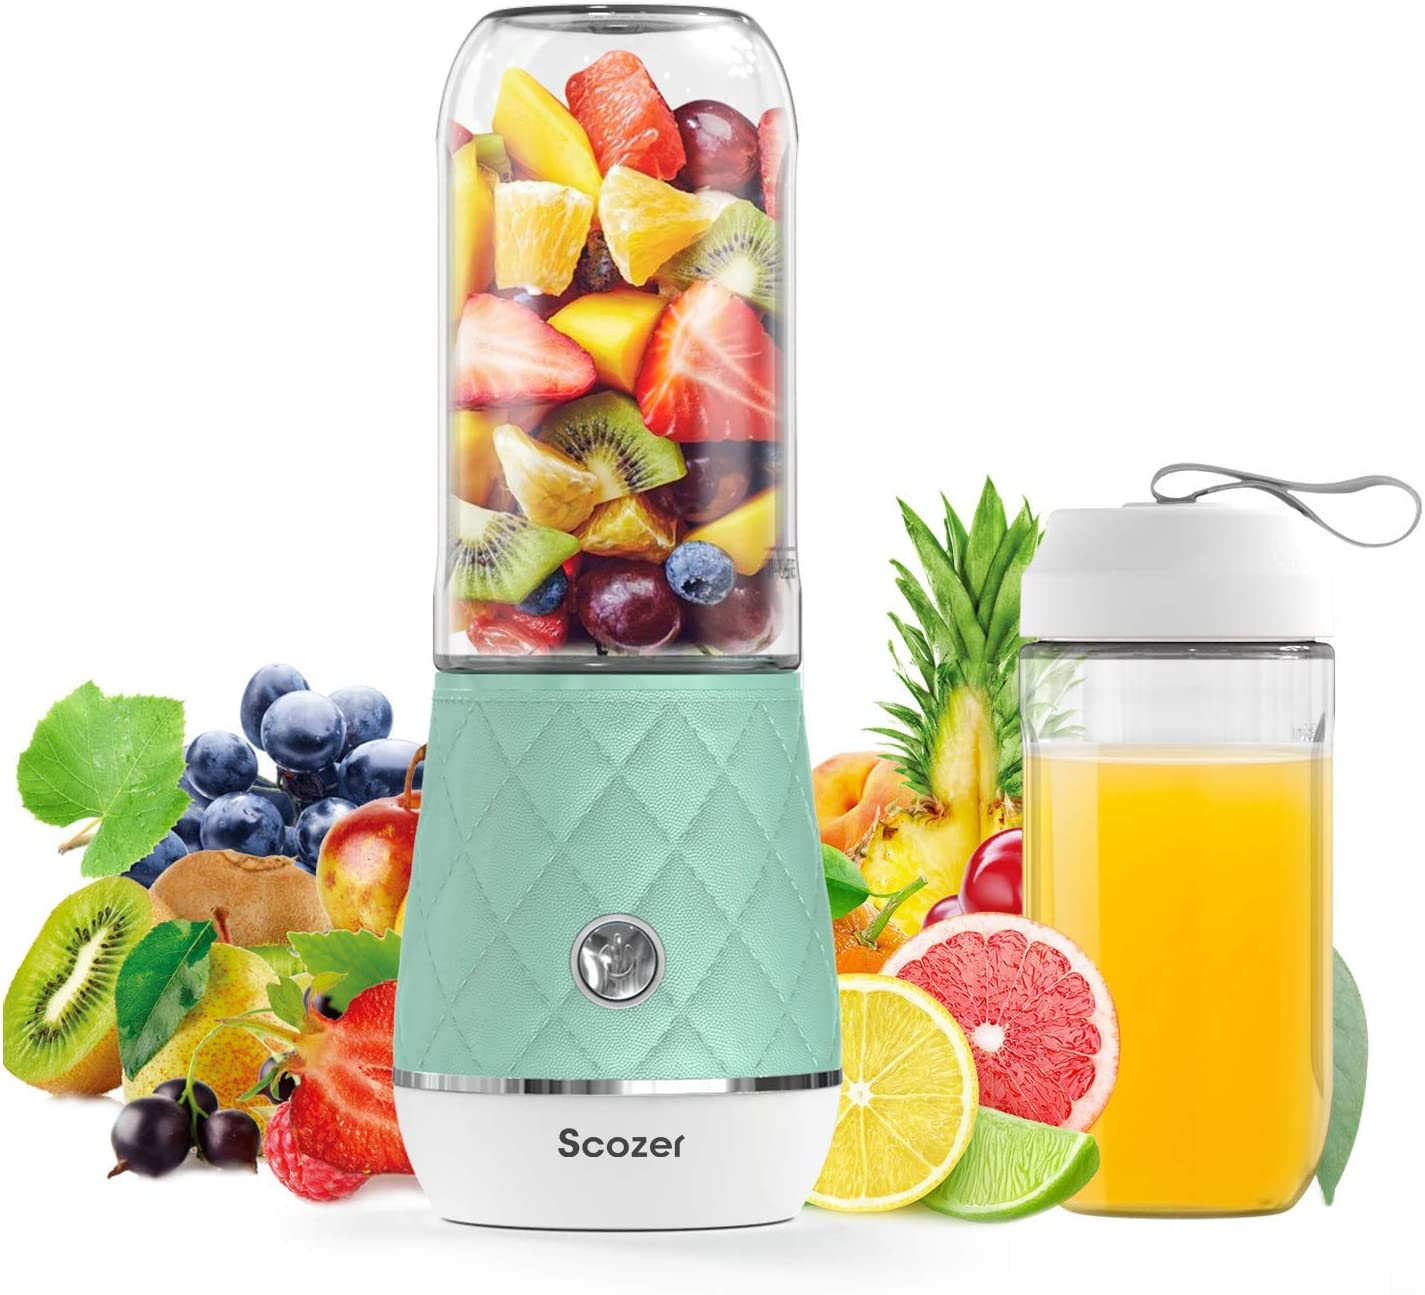 Portable Blender,Cordless Personal Blender Juicer,Mini Mixer,Waterproof Smoothie Blender with USB Rechargeable,BPA Free Tritan 300ml,Juicer Cup Mixer for Home,Office,Sports,Travel,Outdoors